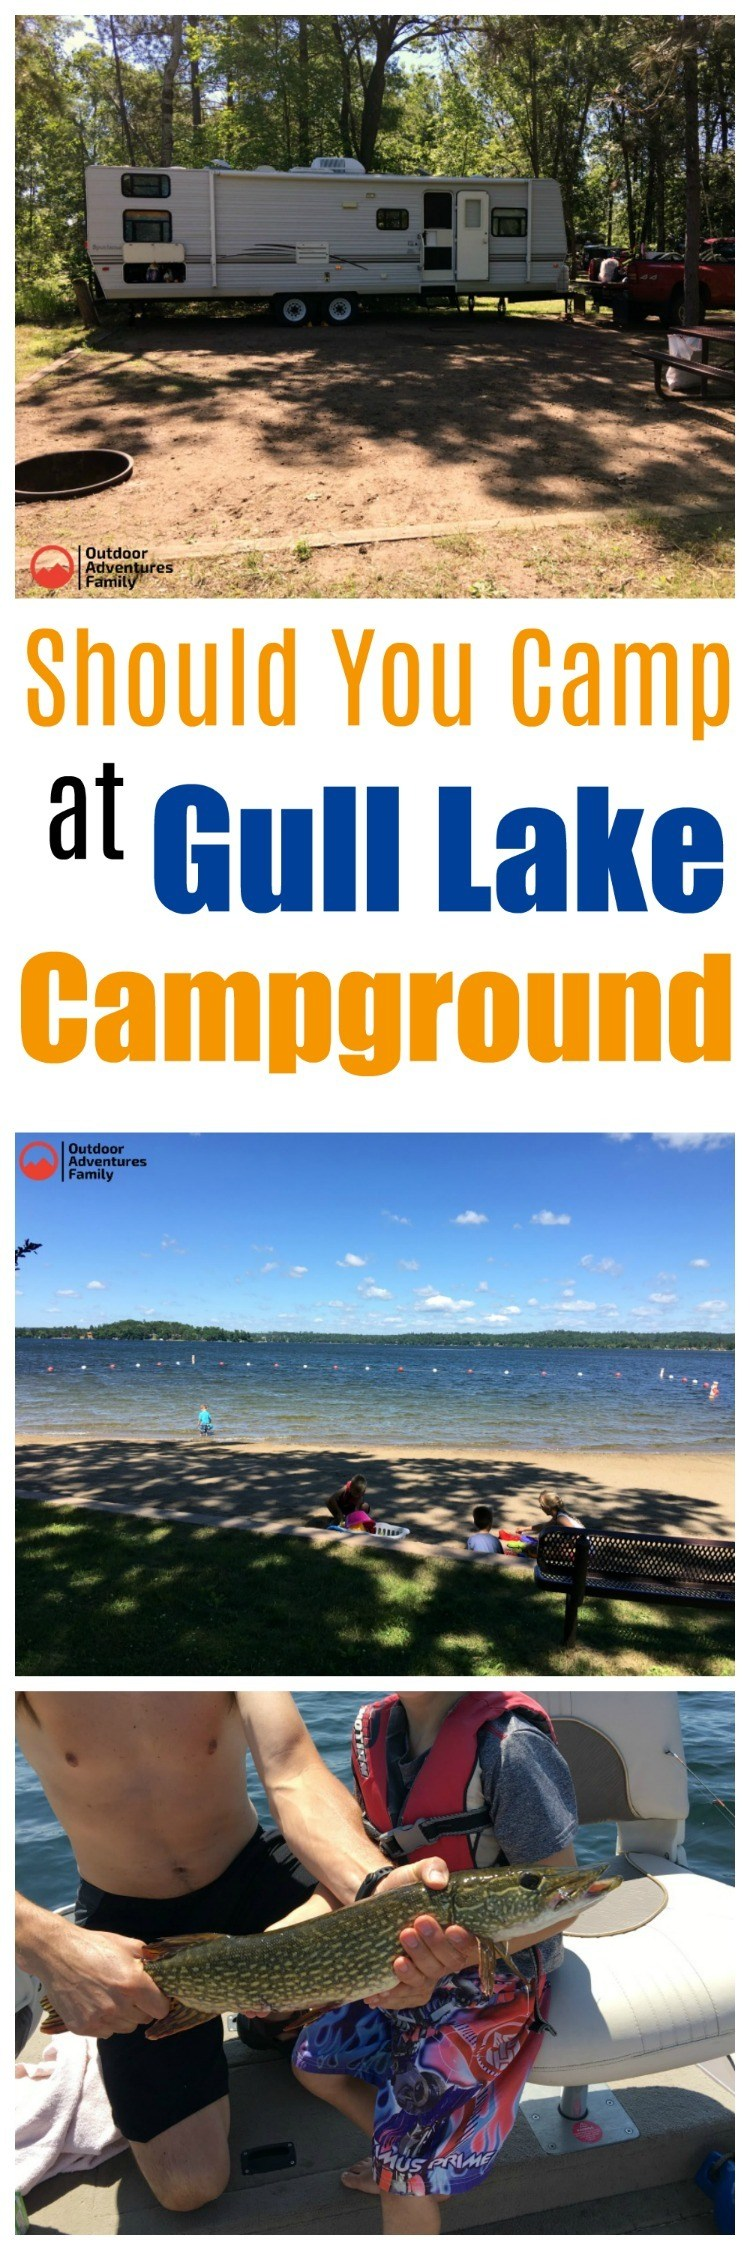 should you camp at Gull Lake campground